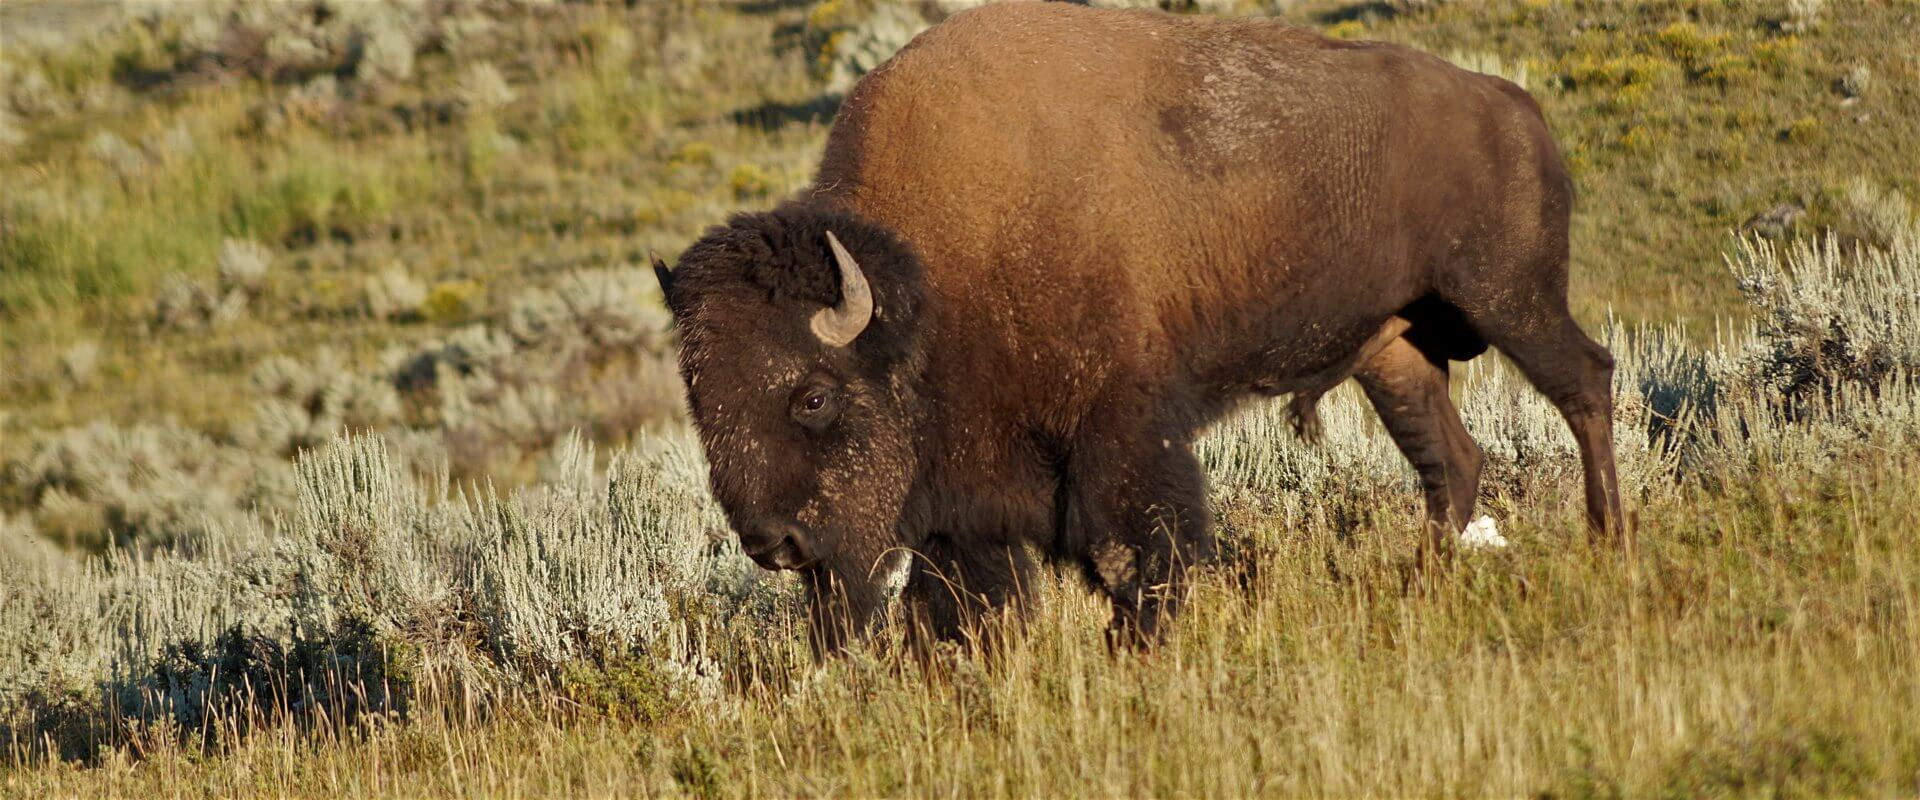 Bisonbulle im Lamar Valley, Yellowstone National Park